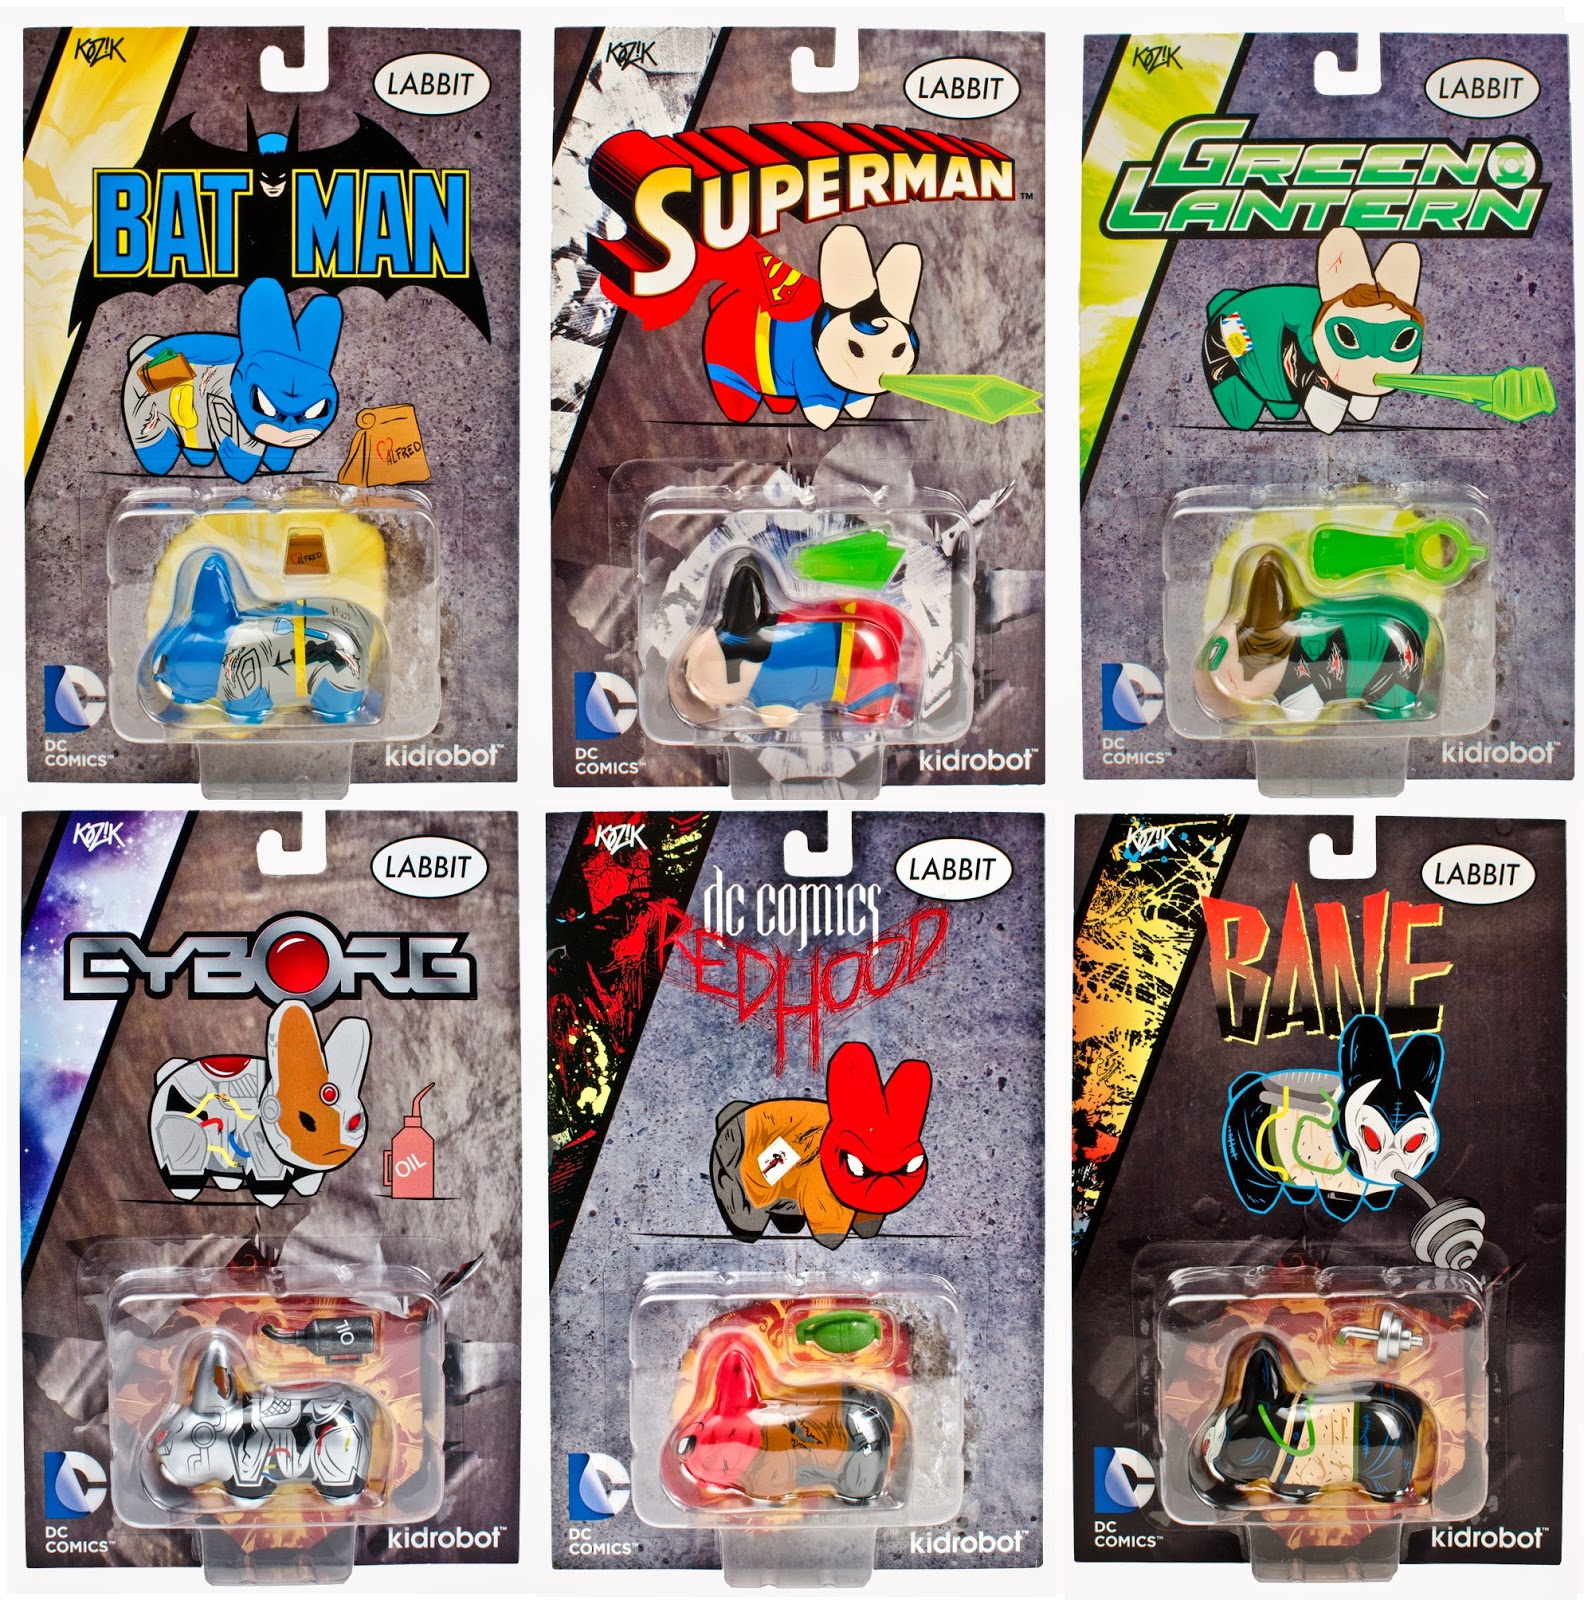 DC Comics Blister Card Labbit Mini Figures by Kidrobot